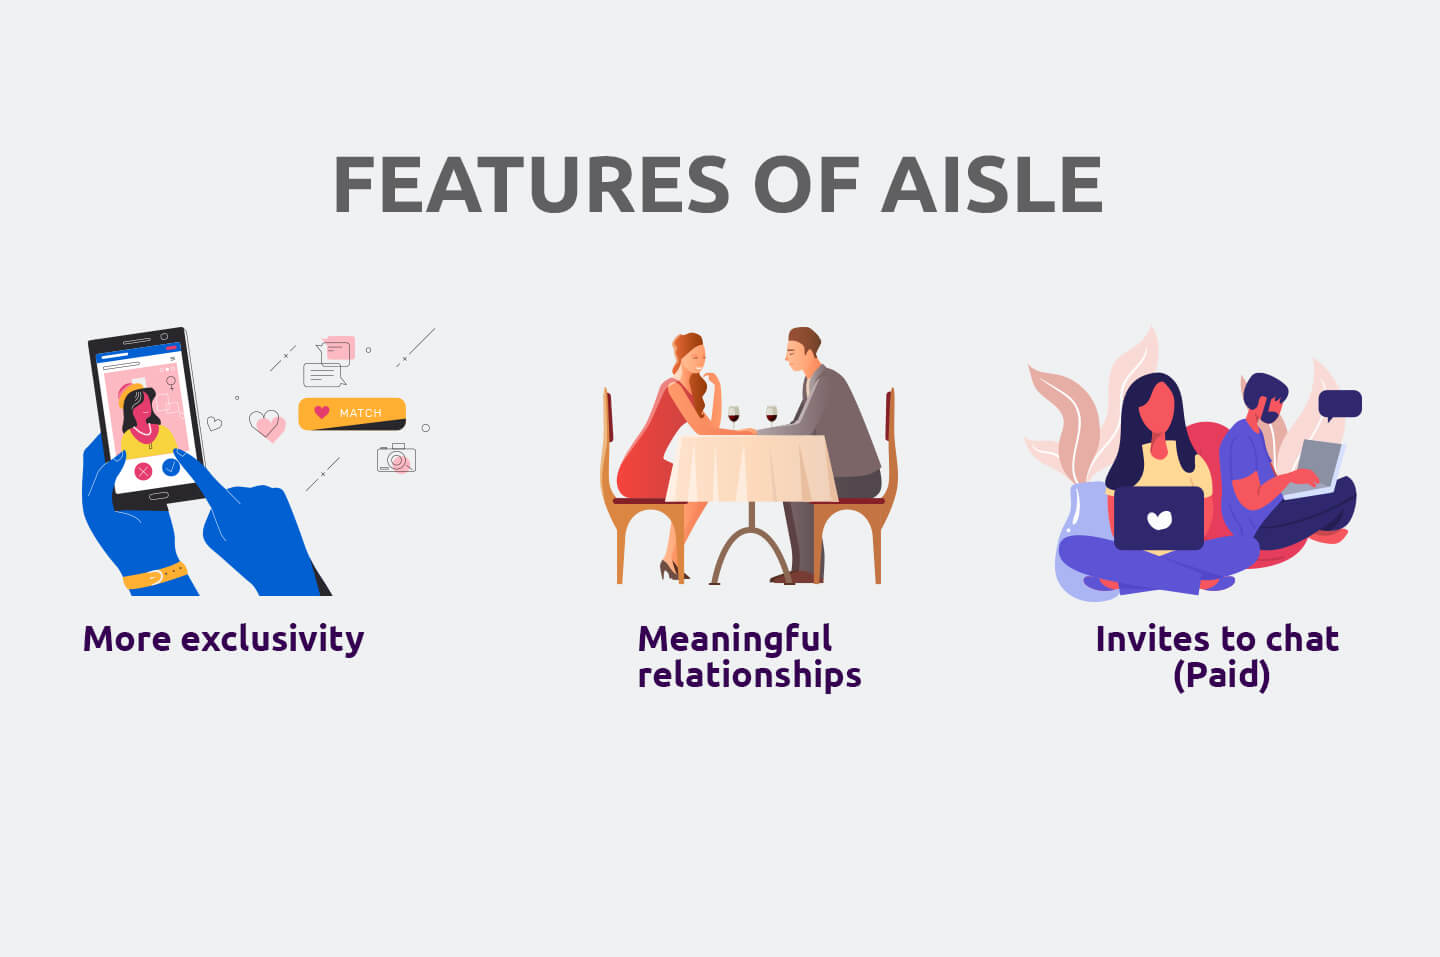 Features of aisle